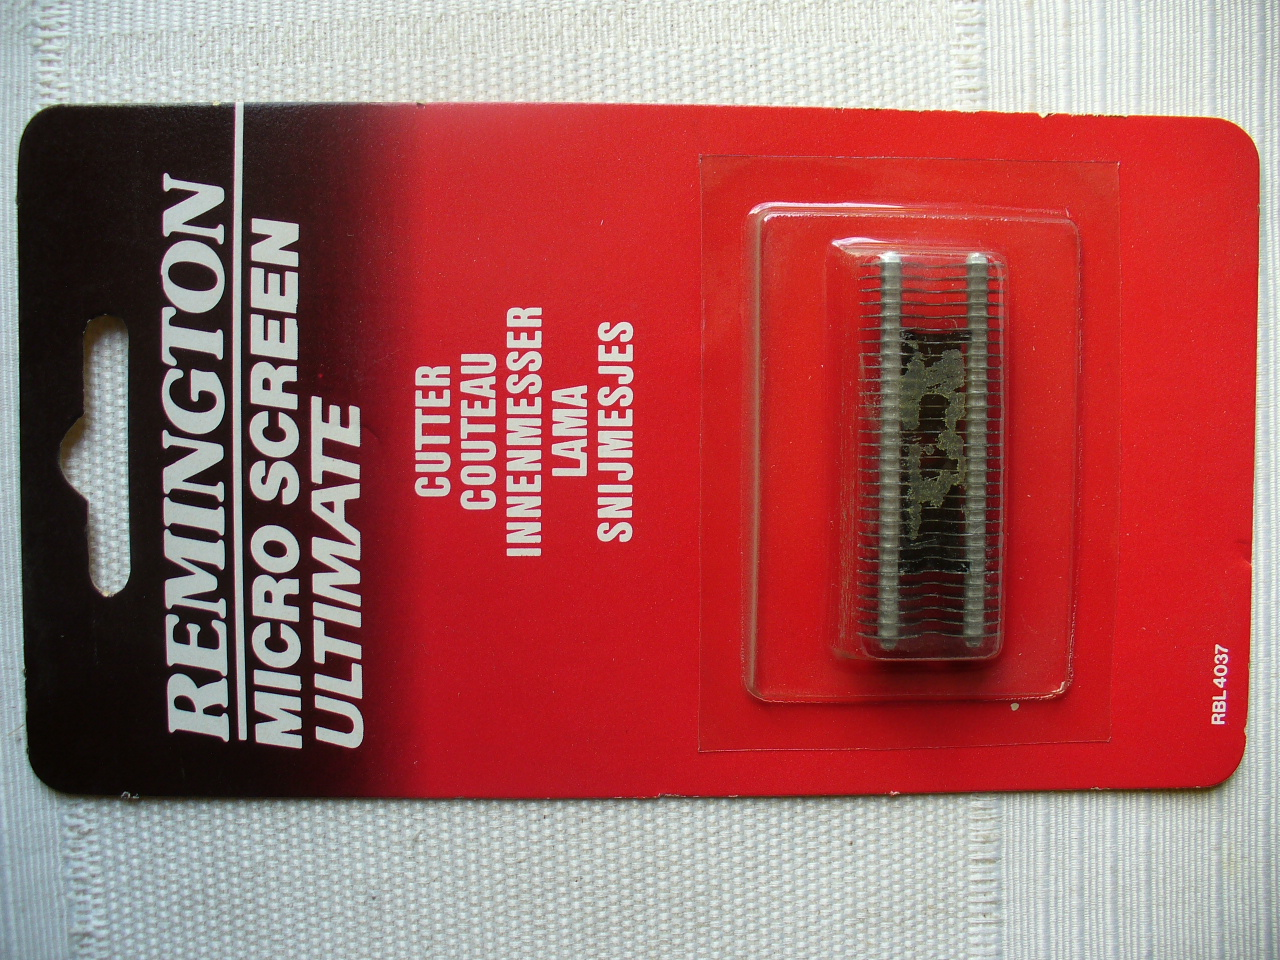 Remington RBL4037 Cutter Unit for Micro Screen Ultimate